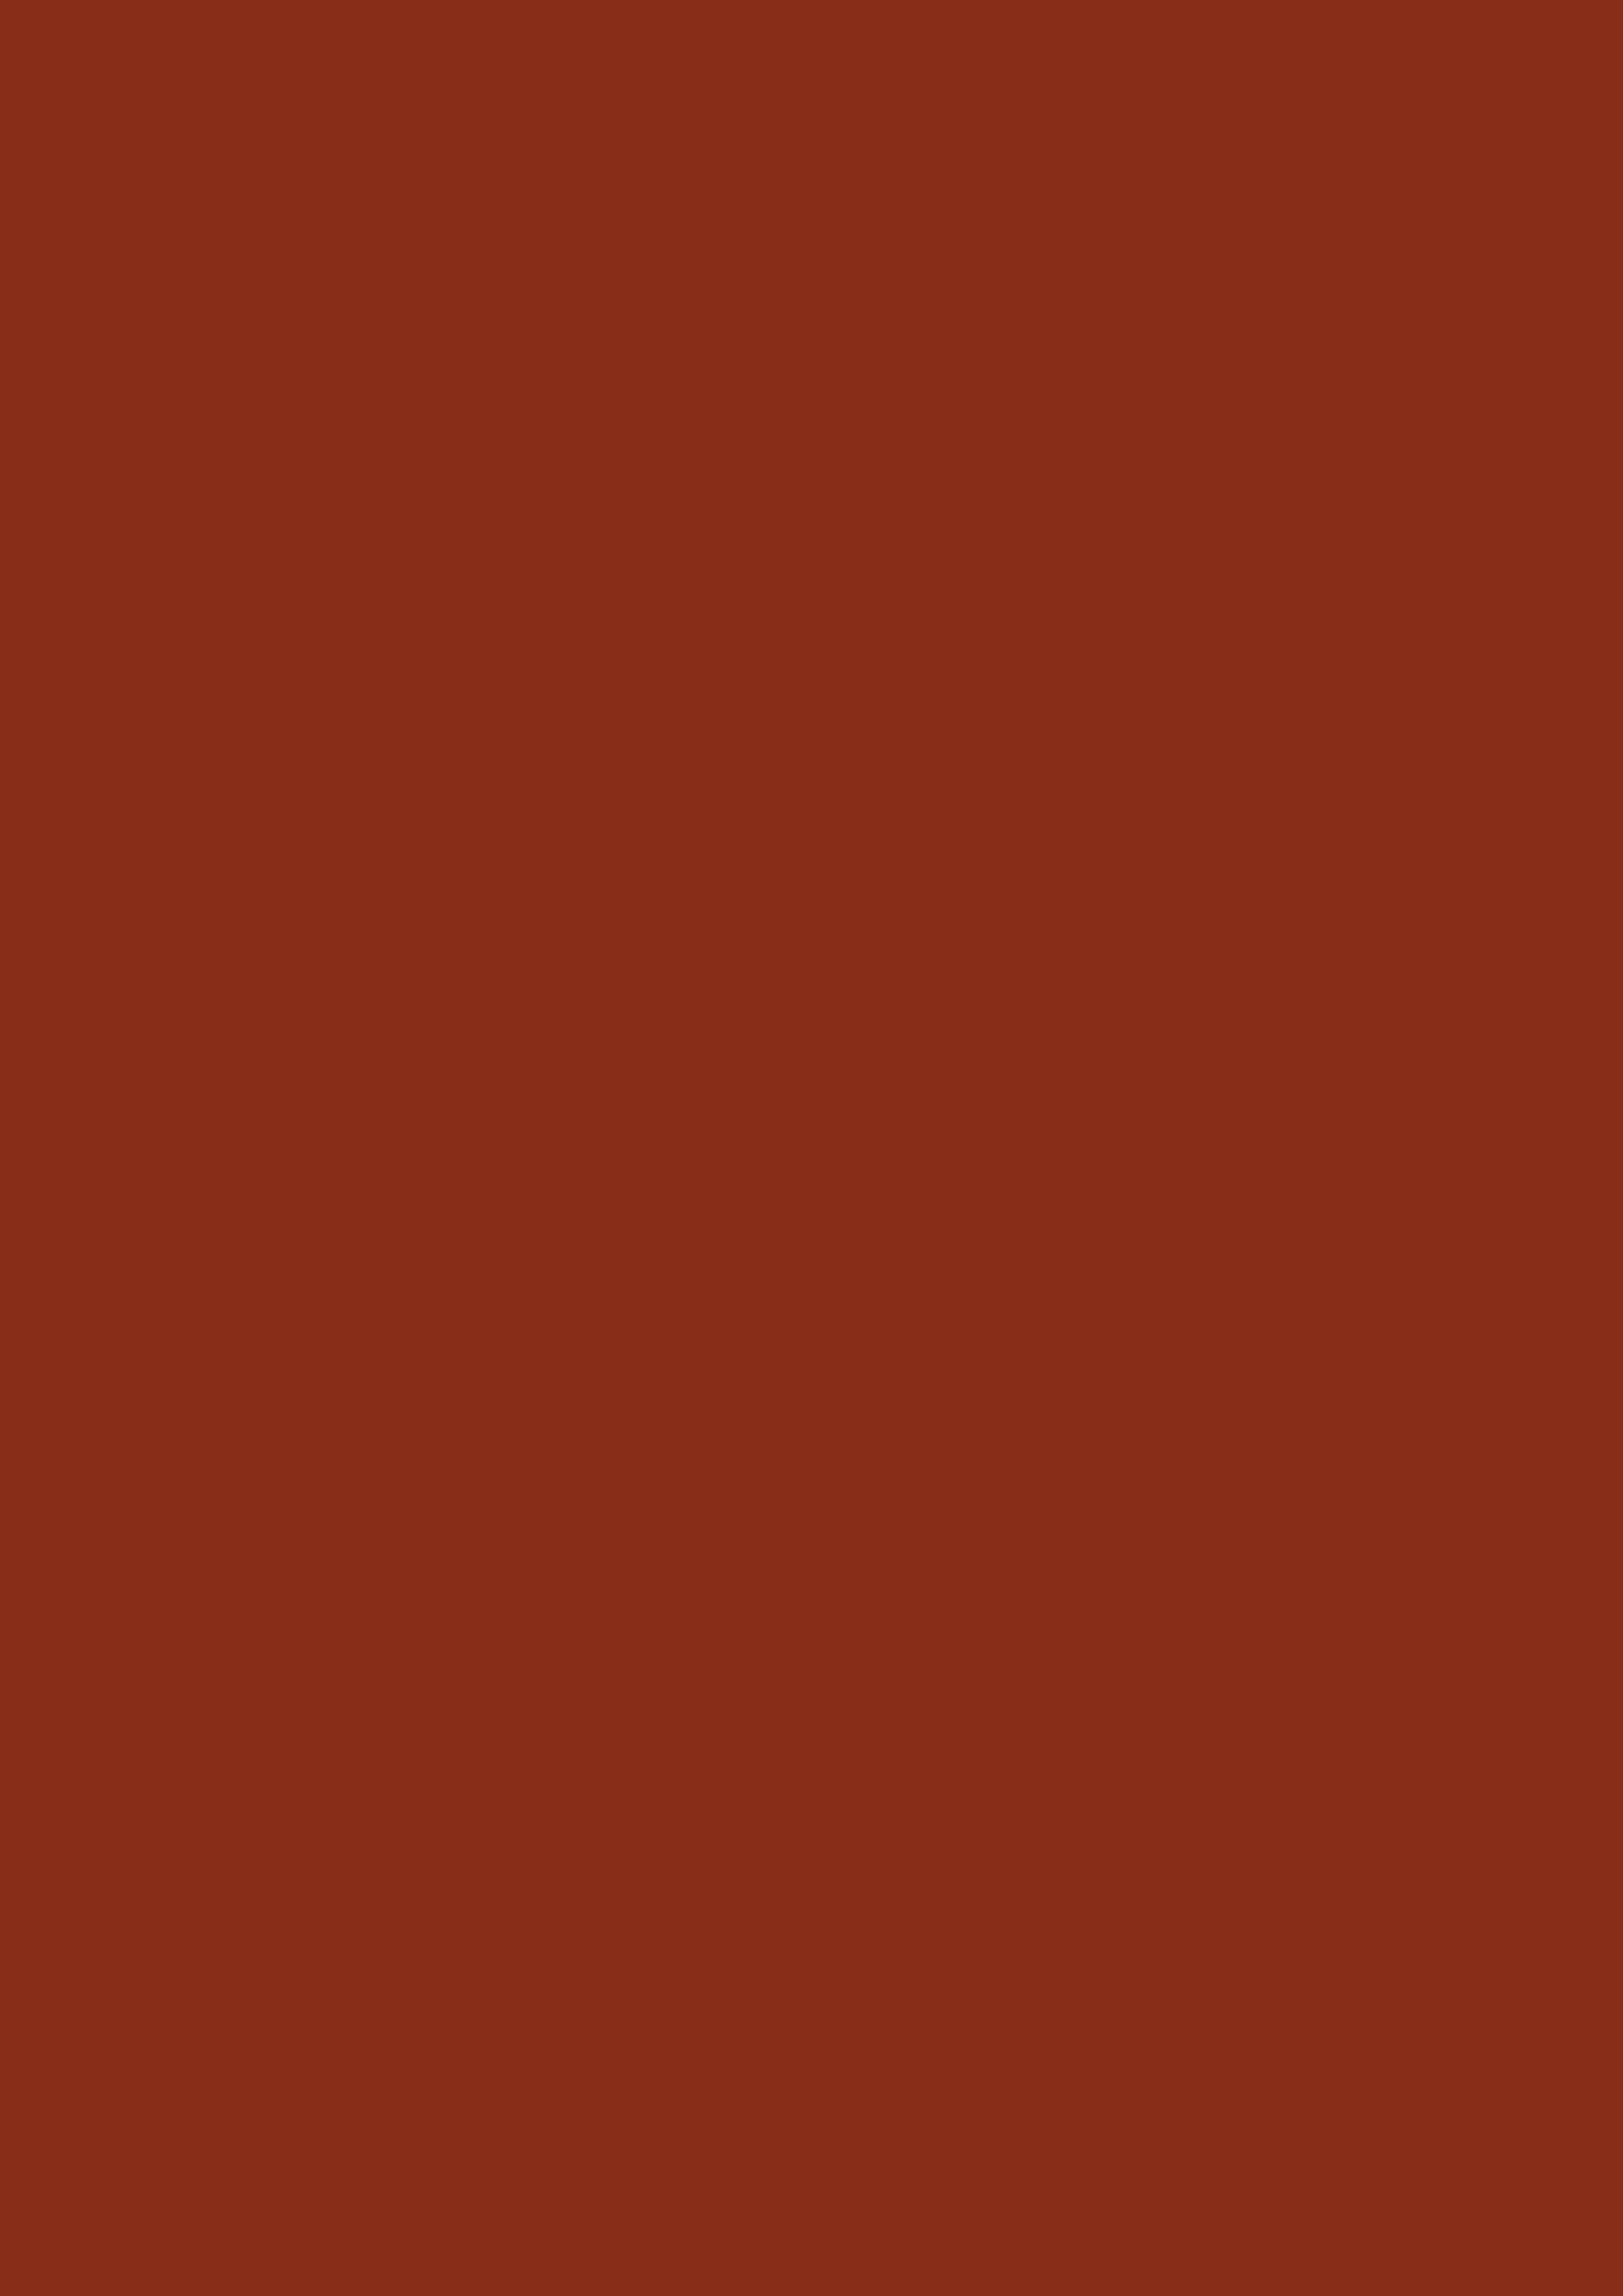 2480x3508 Sienna Solid Color Background